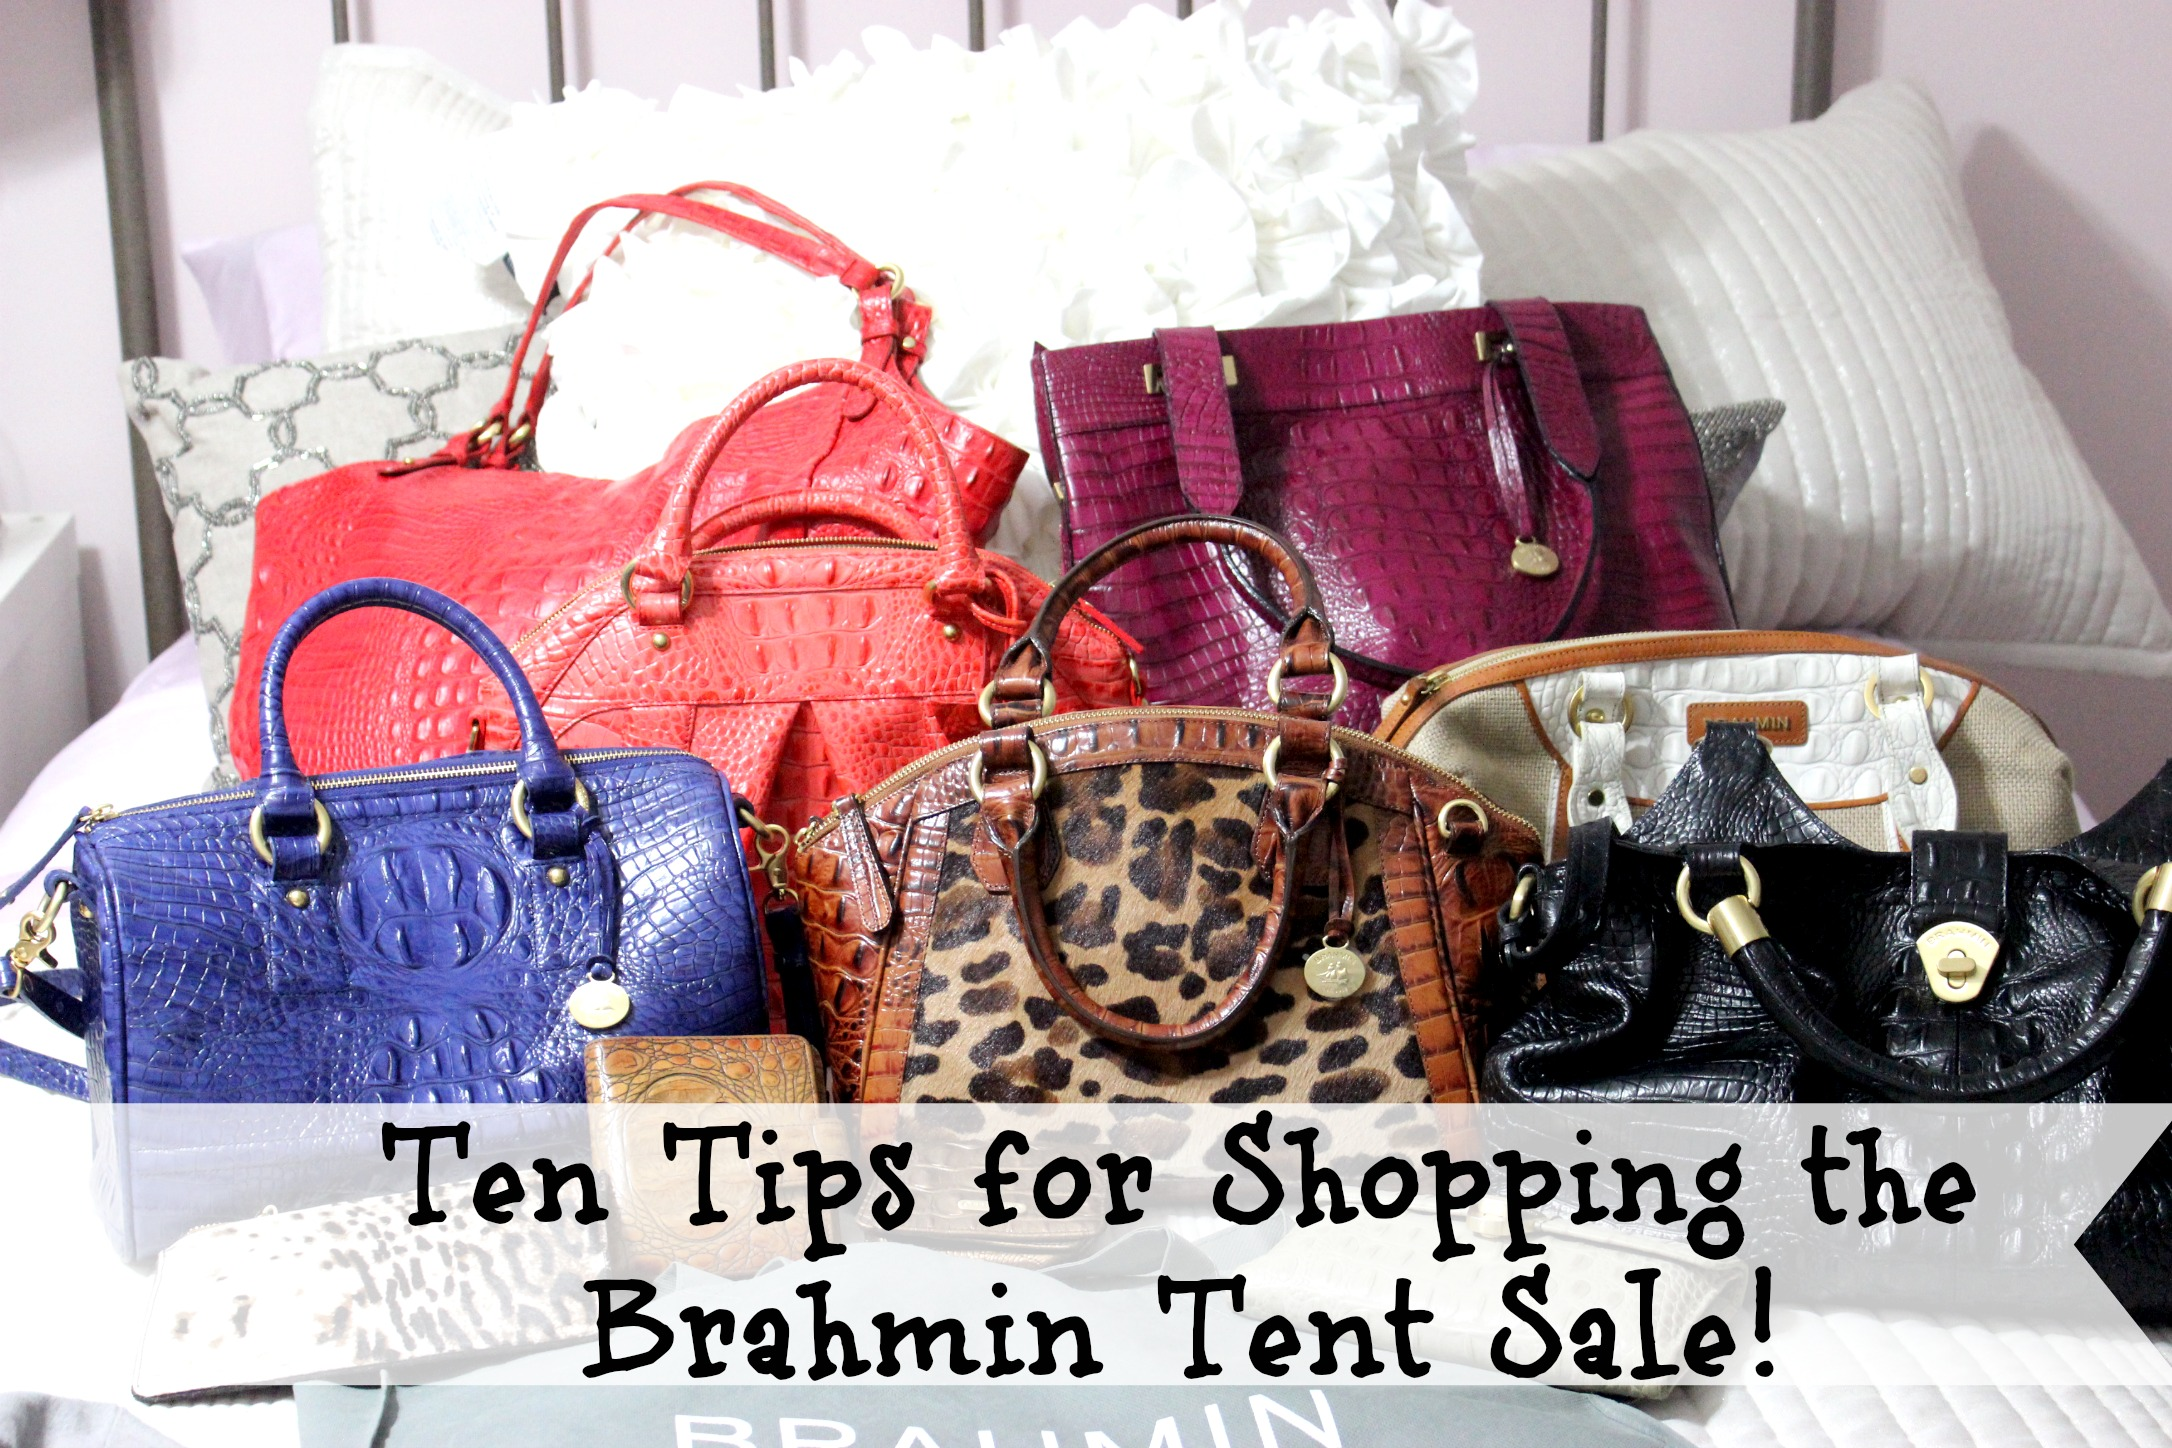 Brahmin handbags on sale for anniversary! | Fashion Accessories